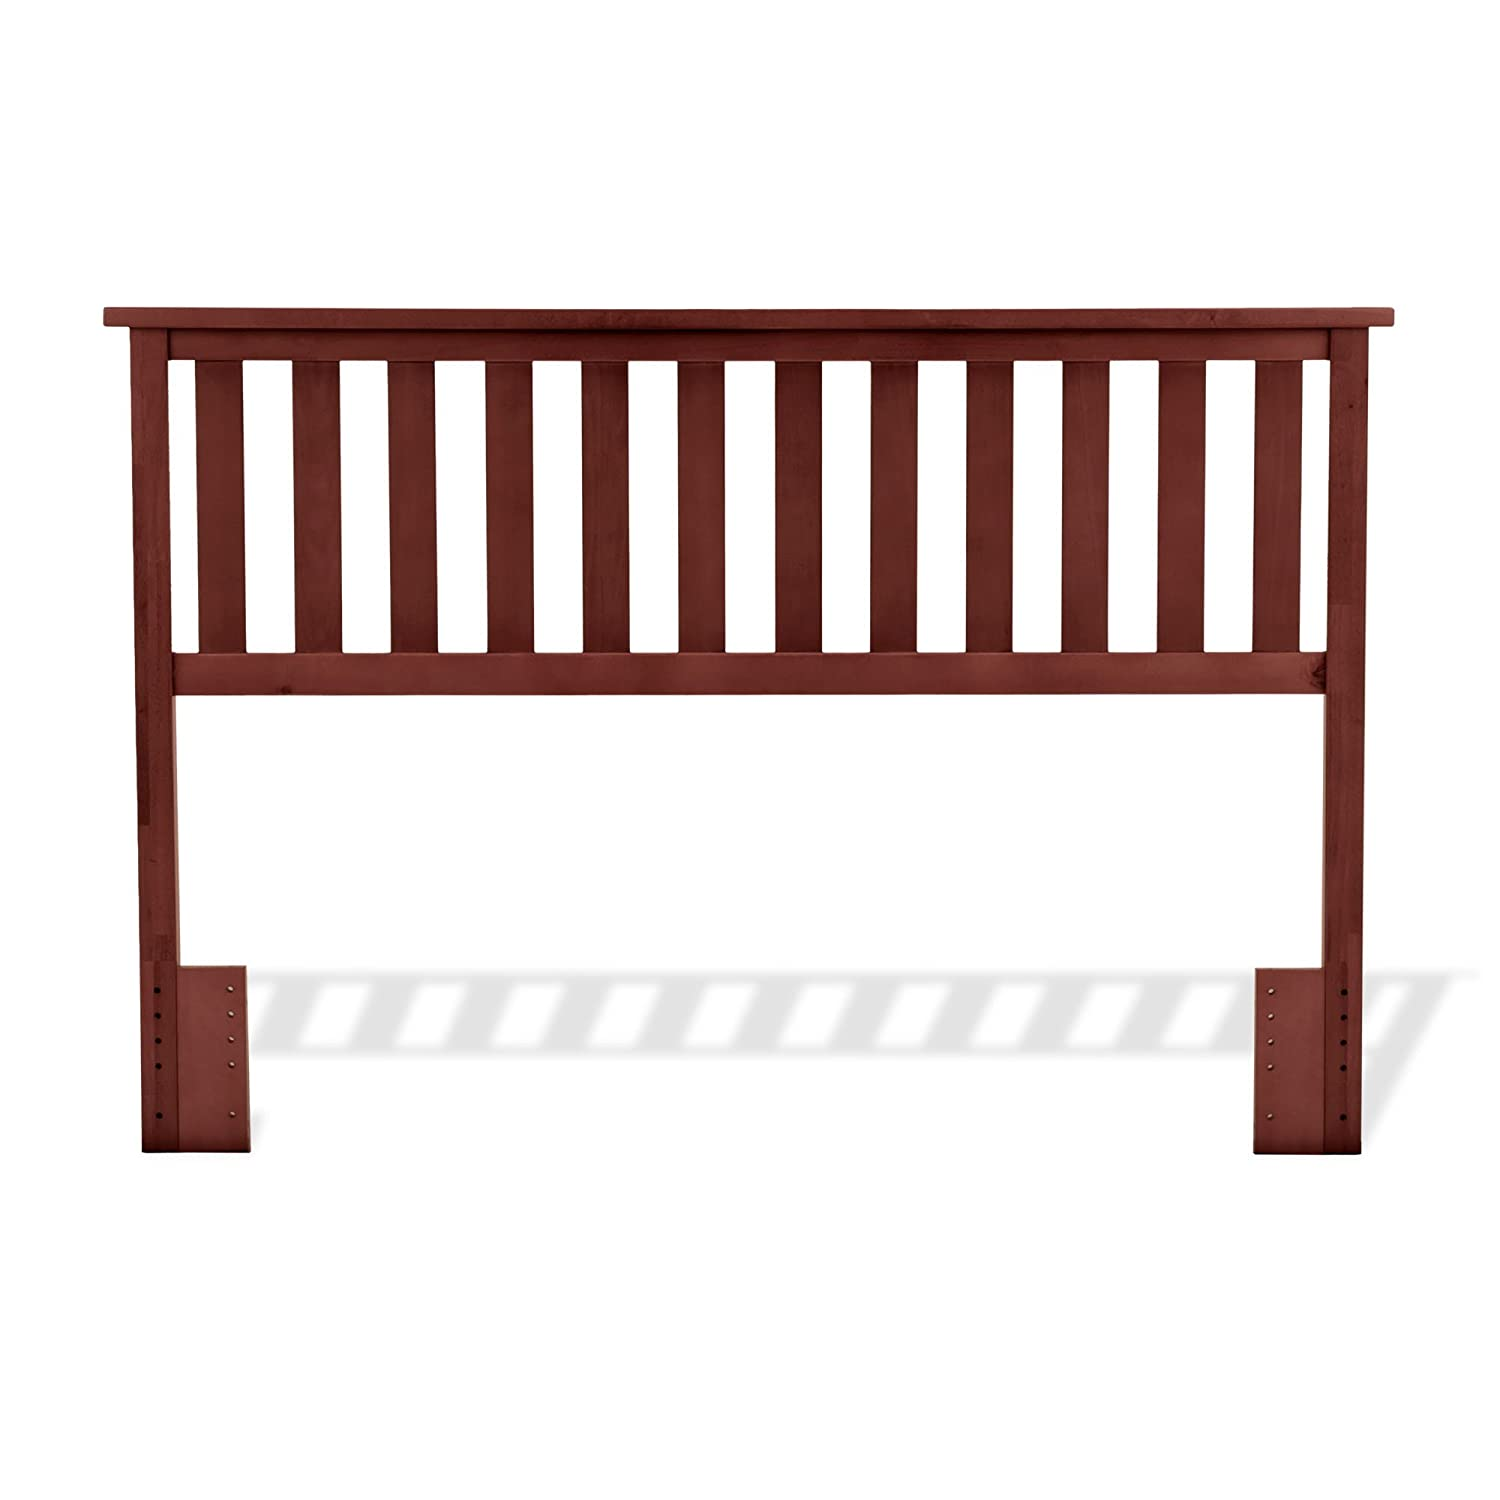 Belmont Wooden Headboard Panel with Slatted Grill Design, Maple Finish, Full / Queen 51L529